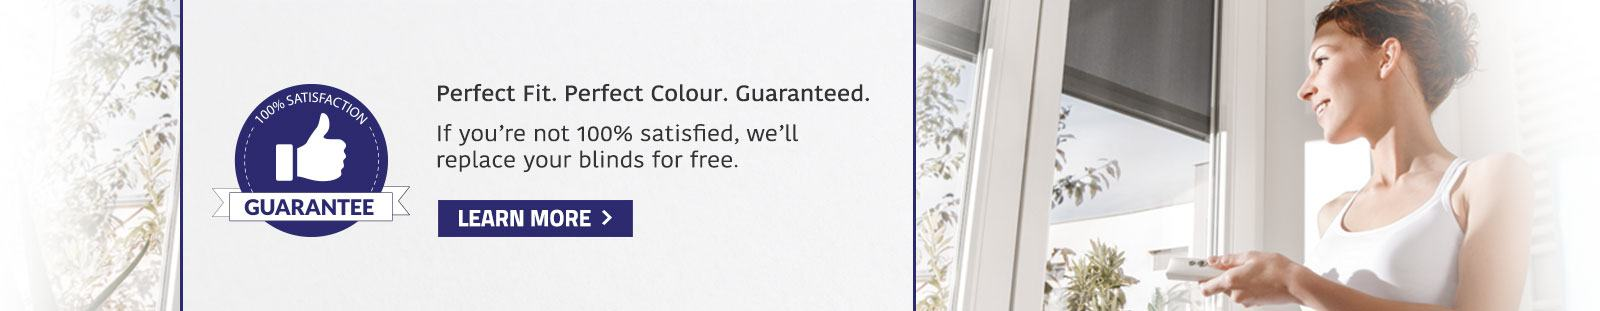 Perfect Fit. Perfect Colour. Gauranteed. If you're not 100% satisfied, we'll replace your blinds for free.